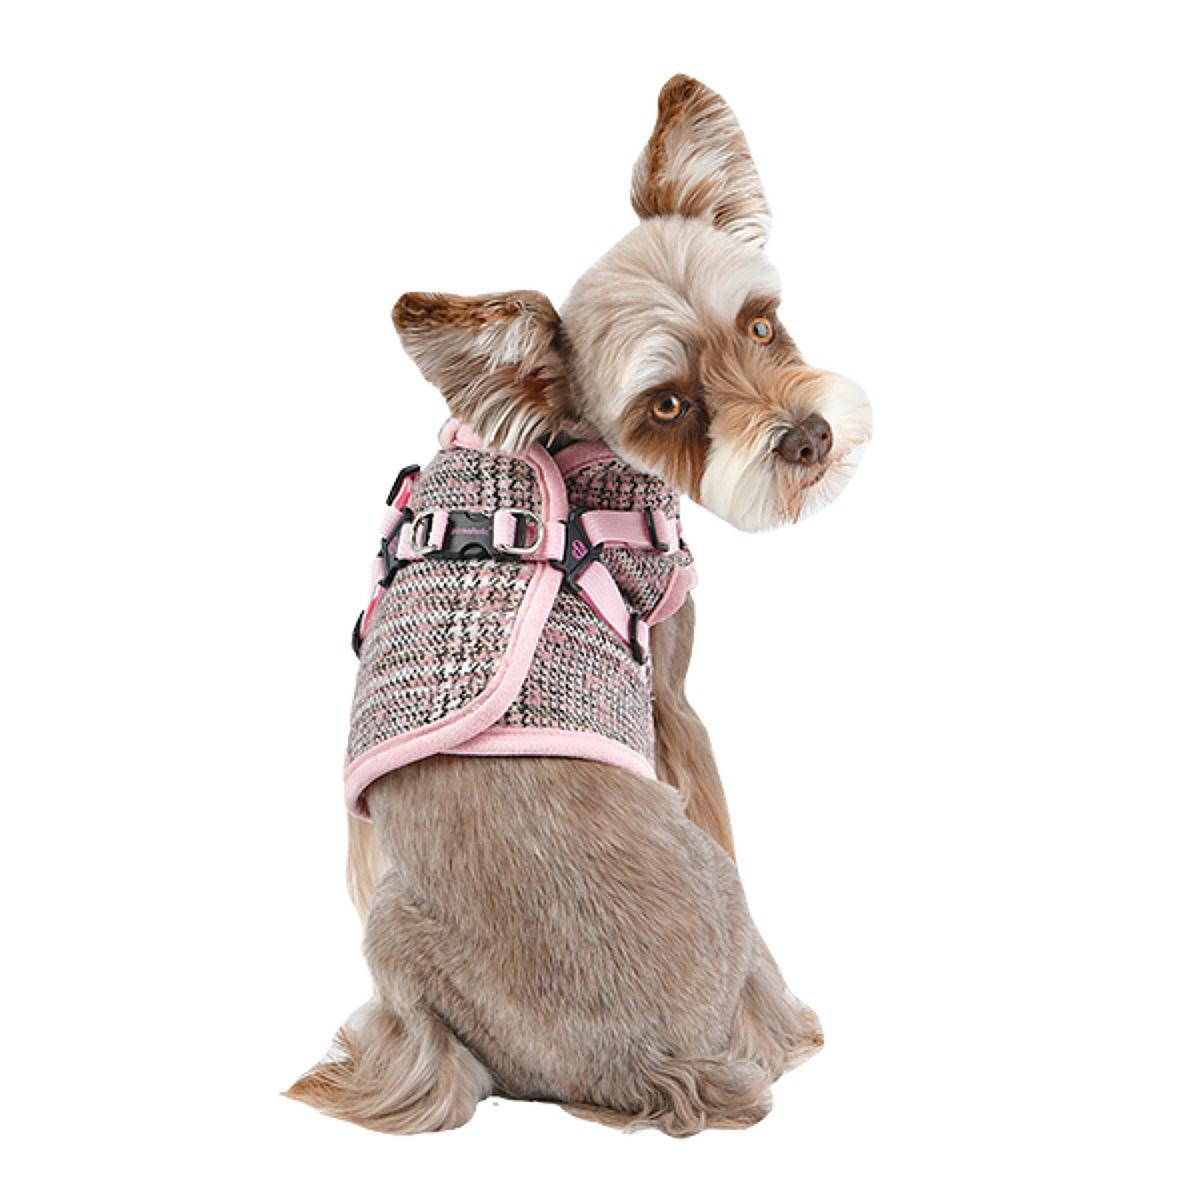 Da Vinci Vest Dog Harness By Pinkaholic - Pink